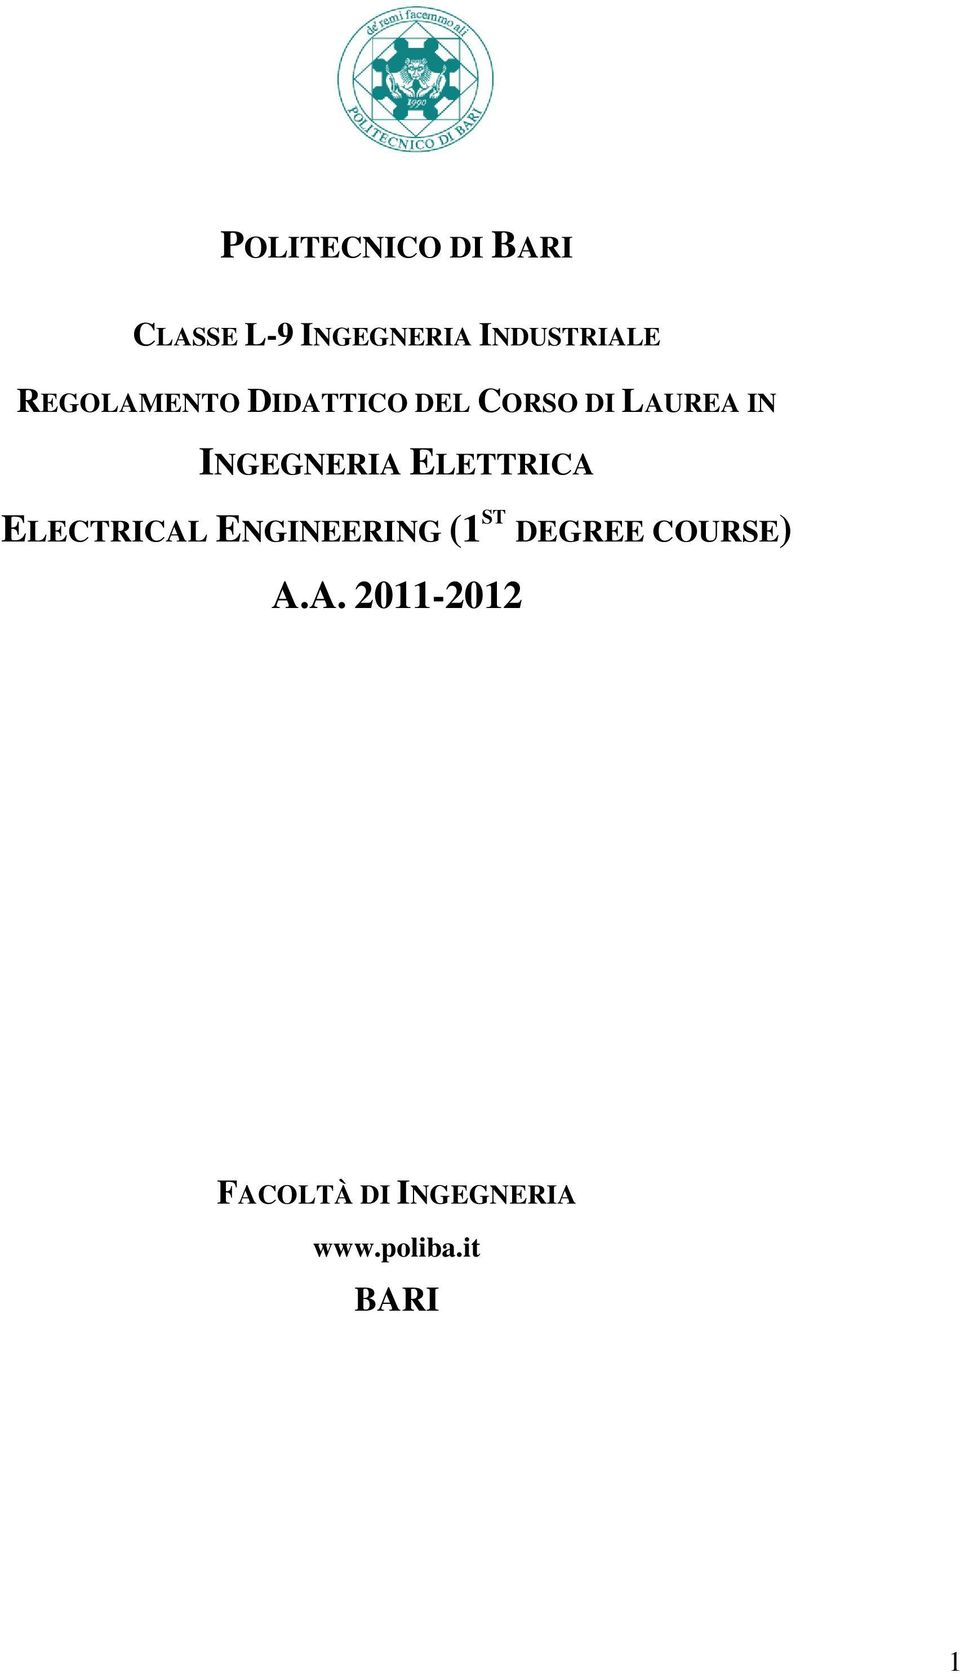 ELETTRICA ELECTRICAL ENGINEERING (1 ST DEGREE COURSE) A.